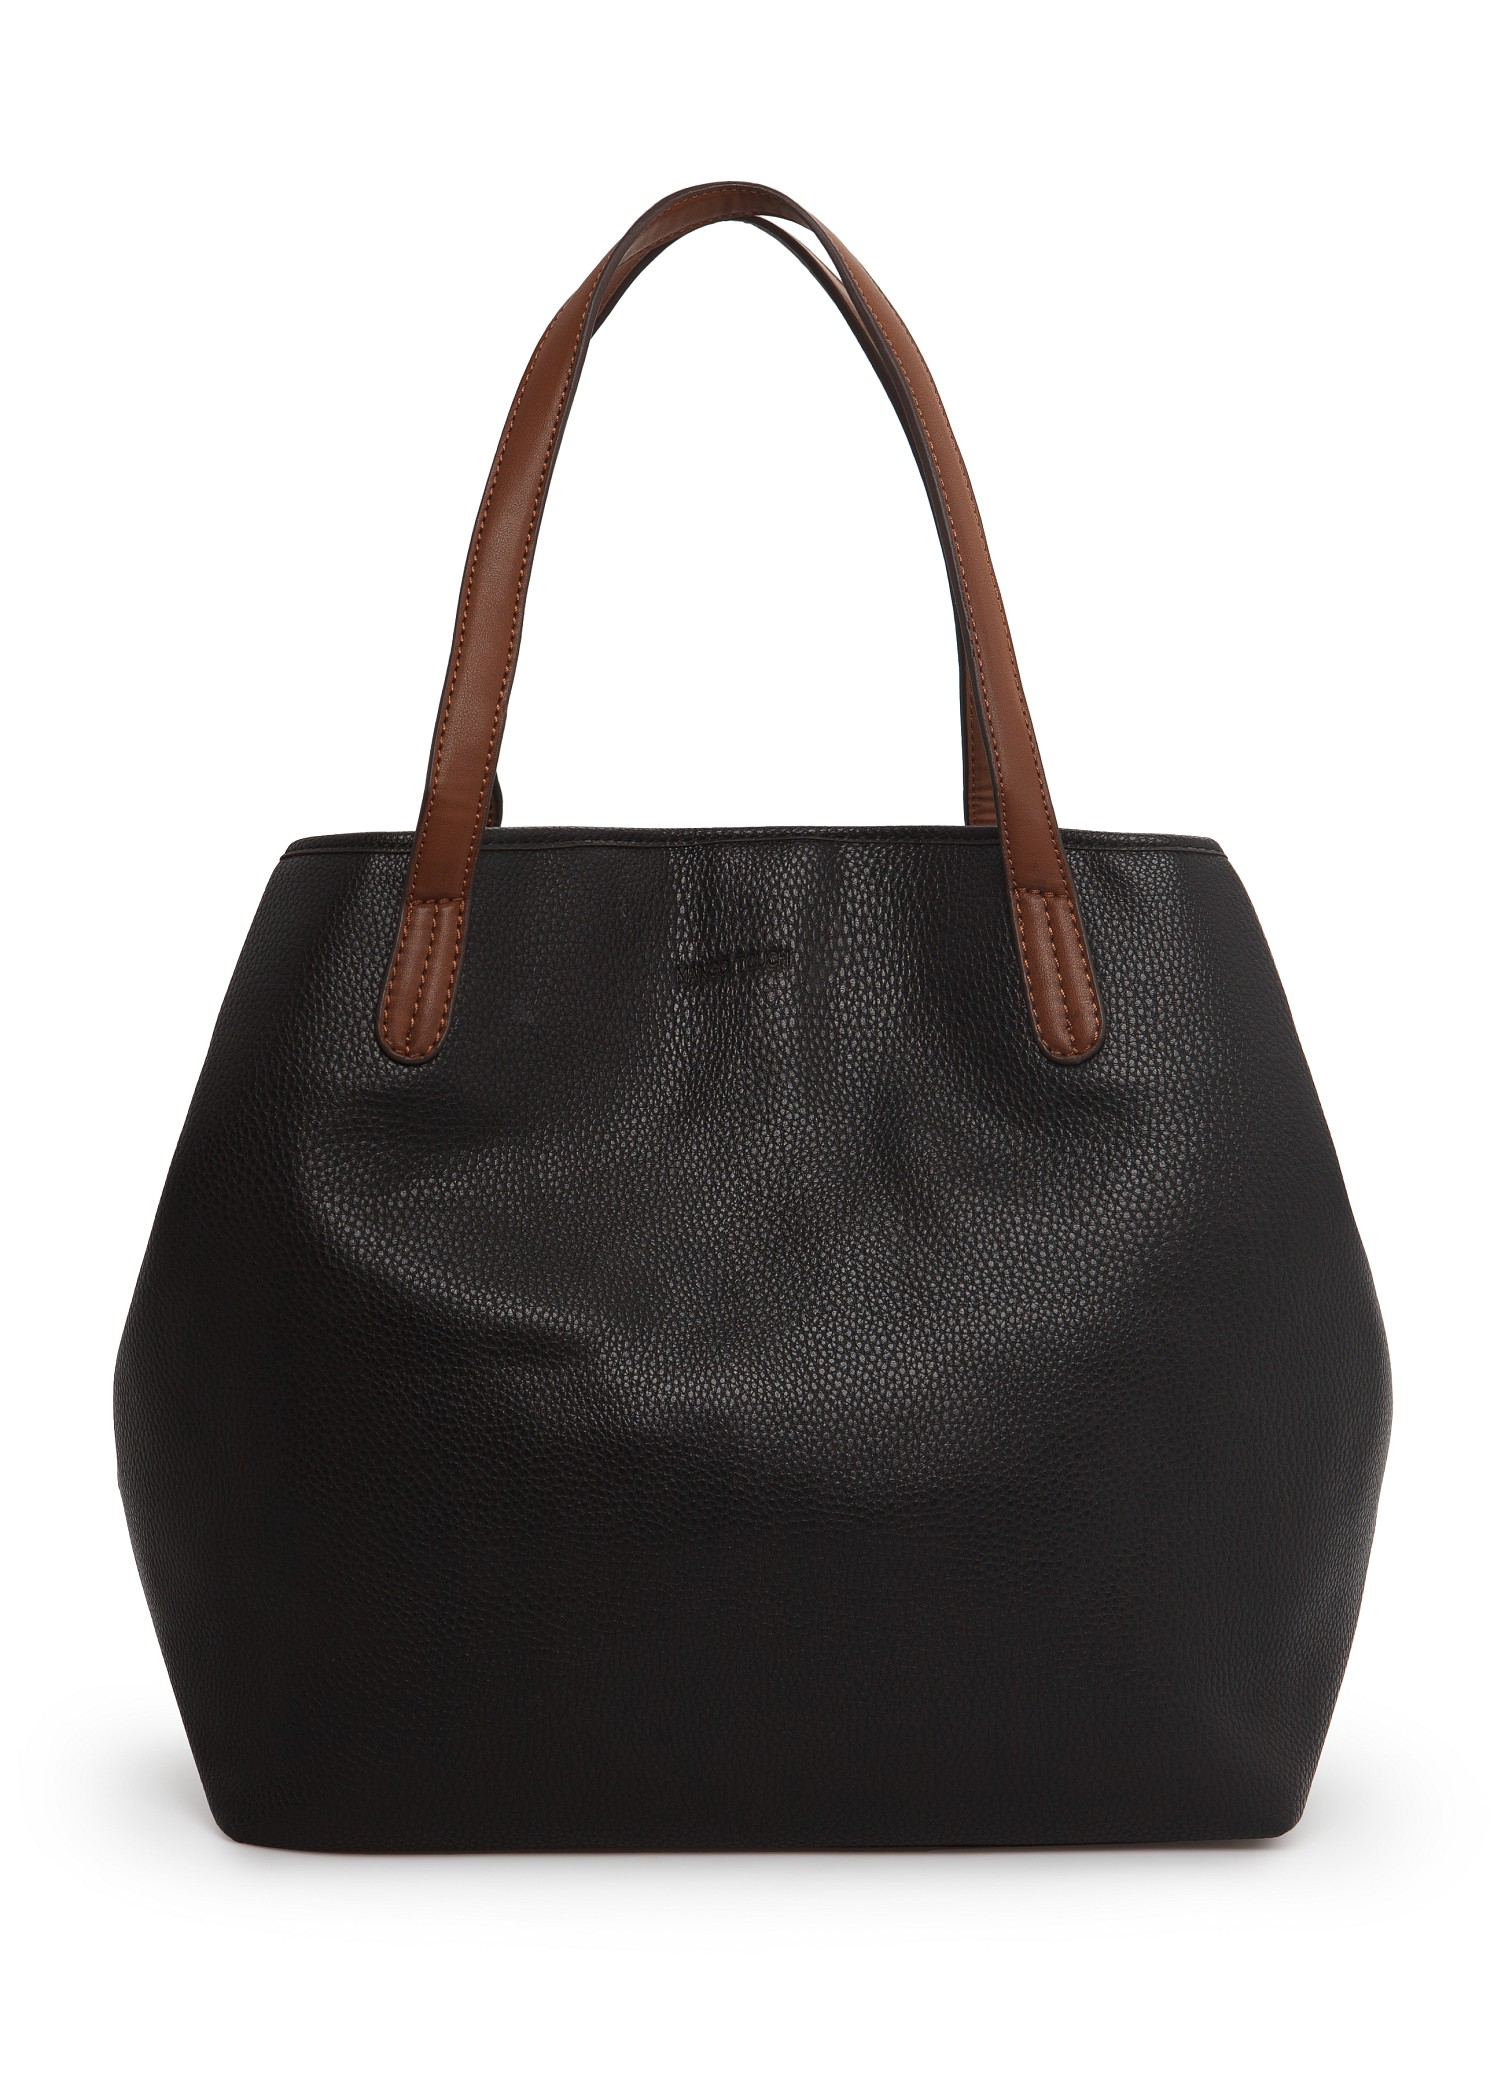 Mango Adjustable Shape Shopper Bag in Black | Lyst